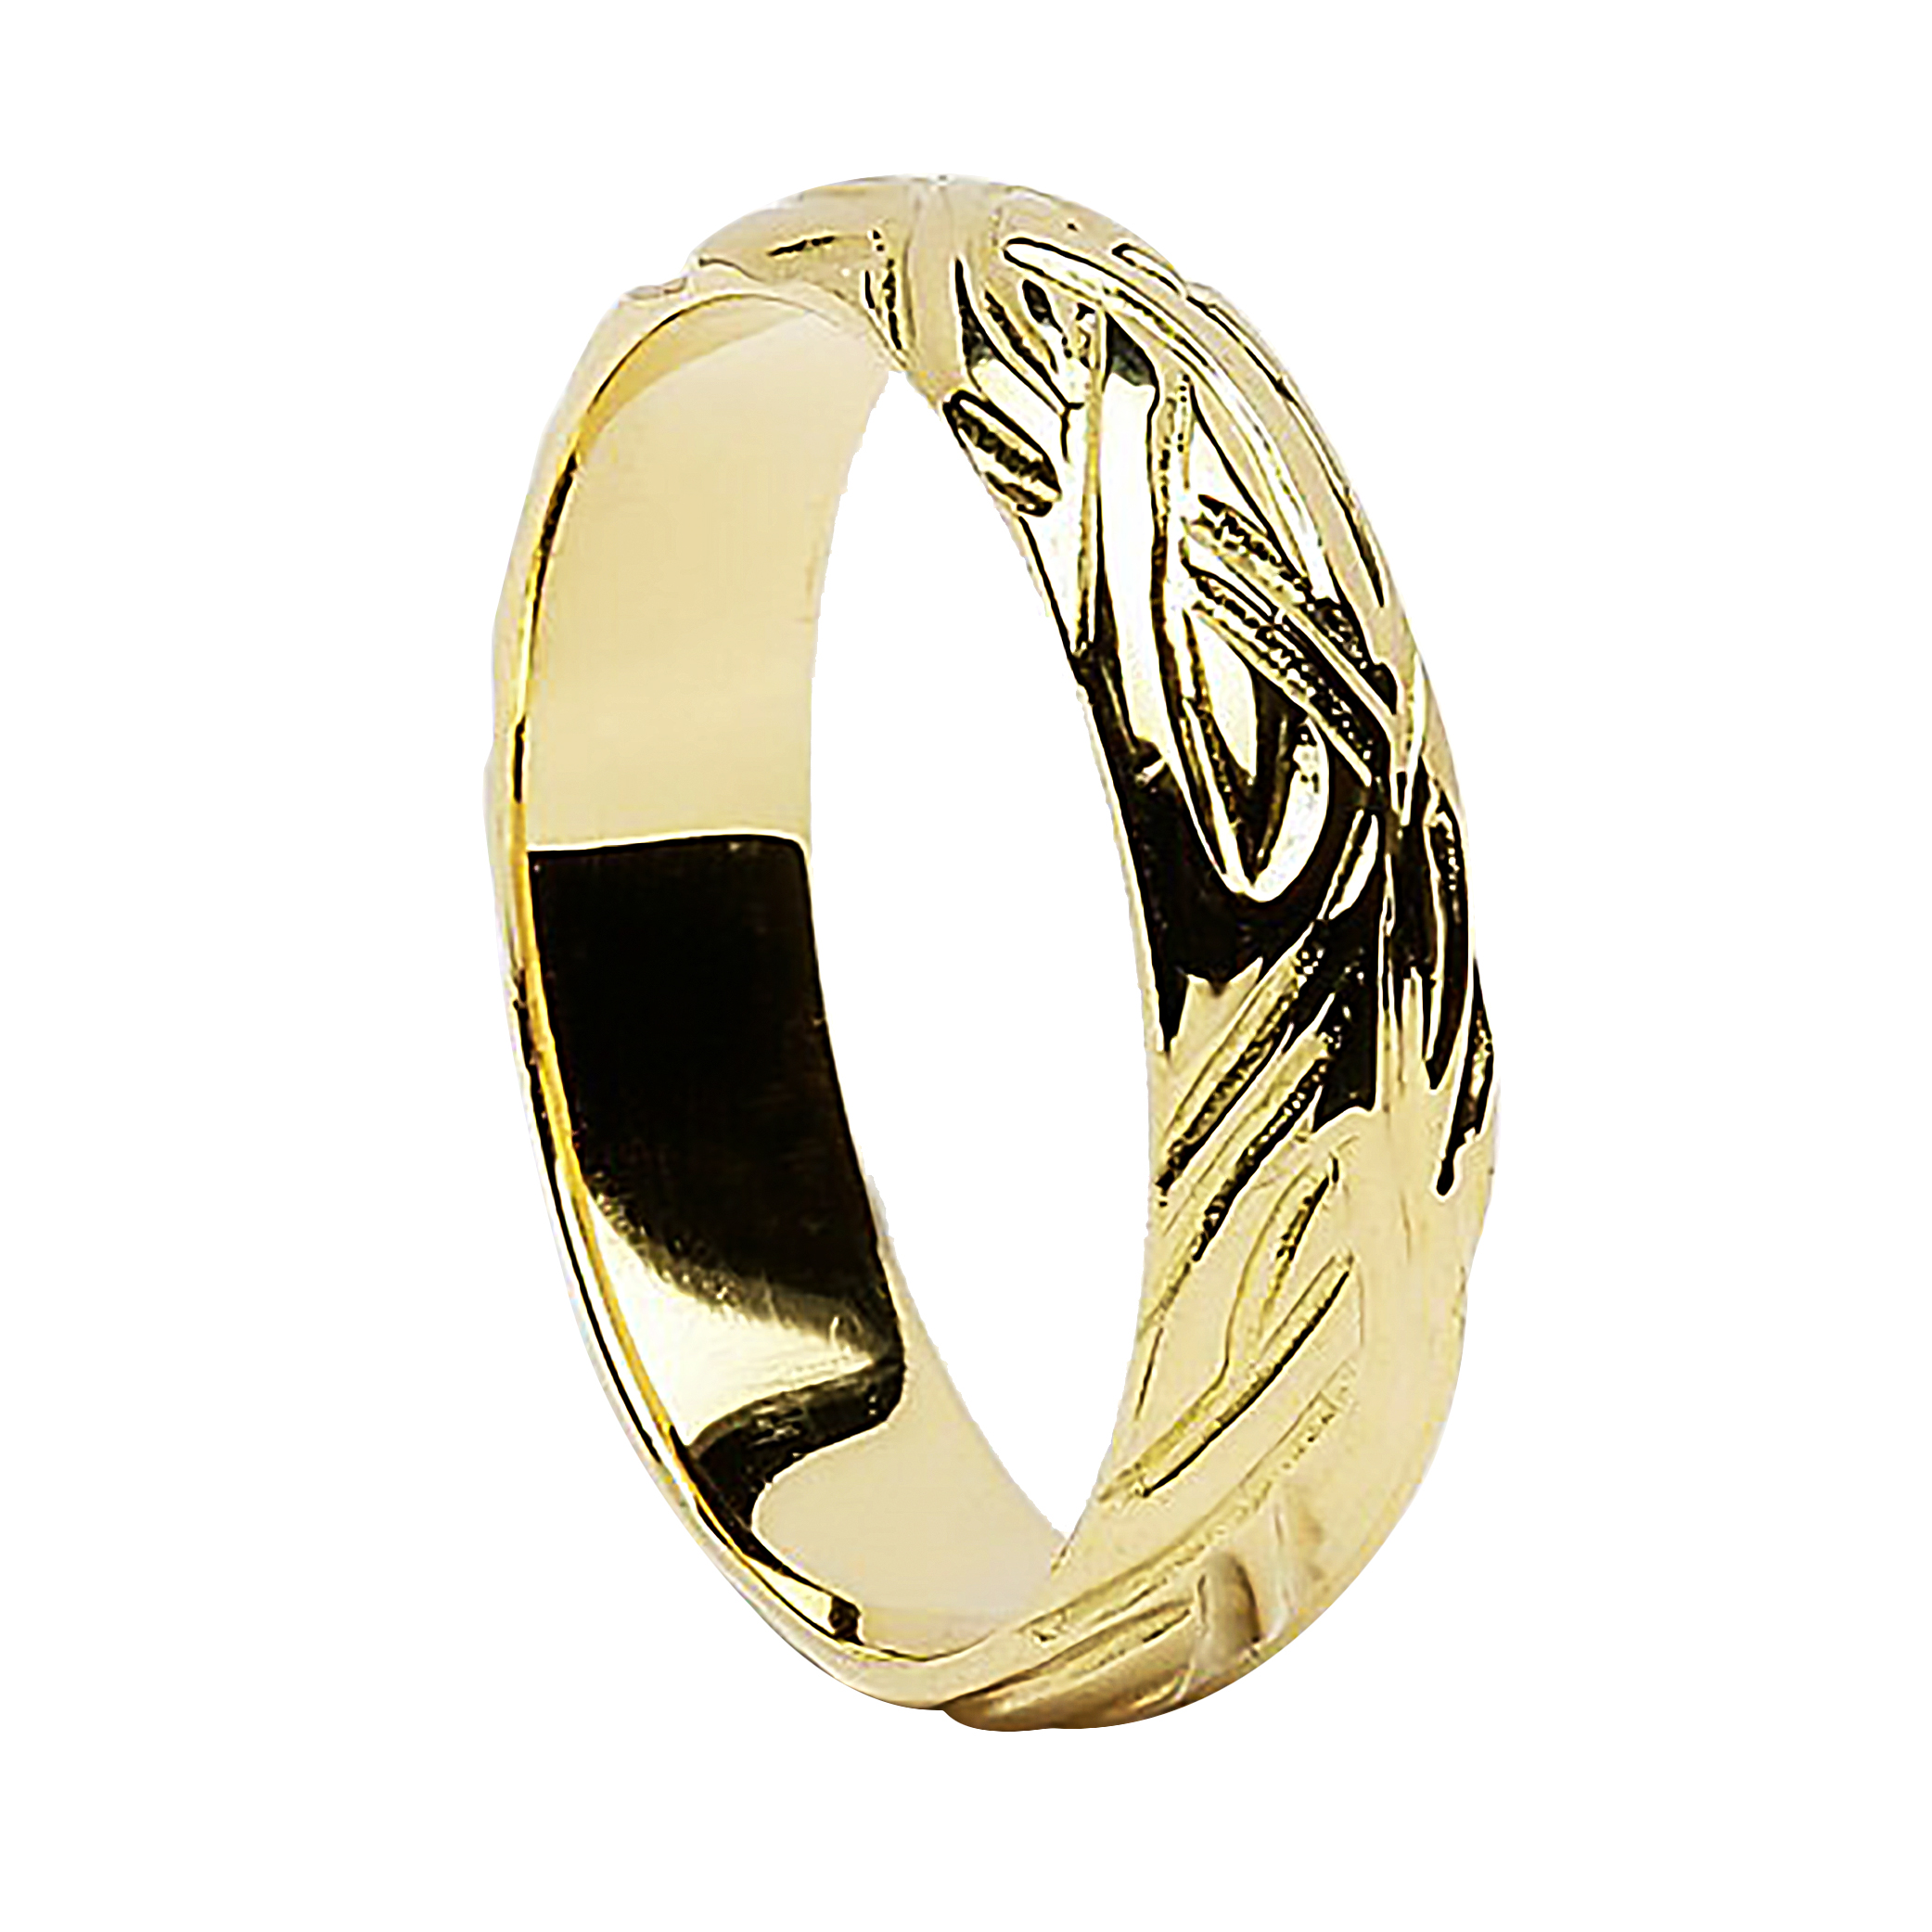 irish collections jewellers jewelry claddagh bangle contemporary bracelets knot jewellery trinity